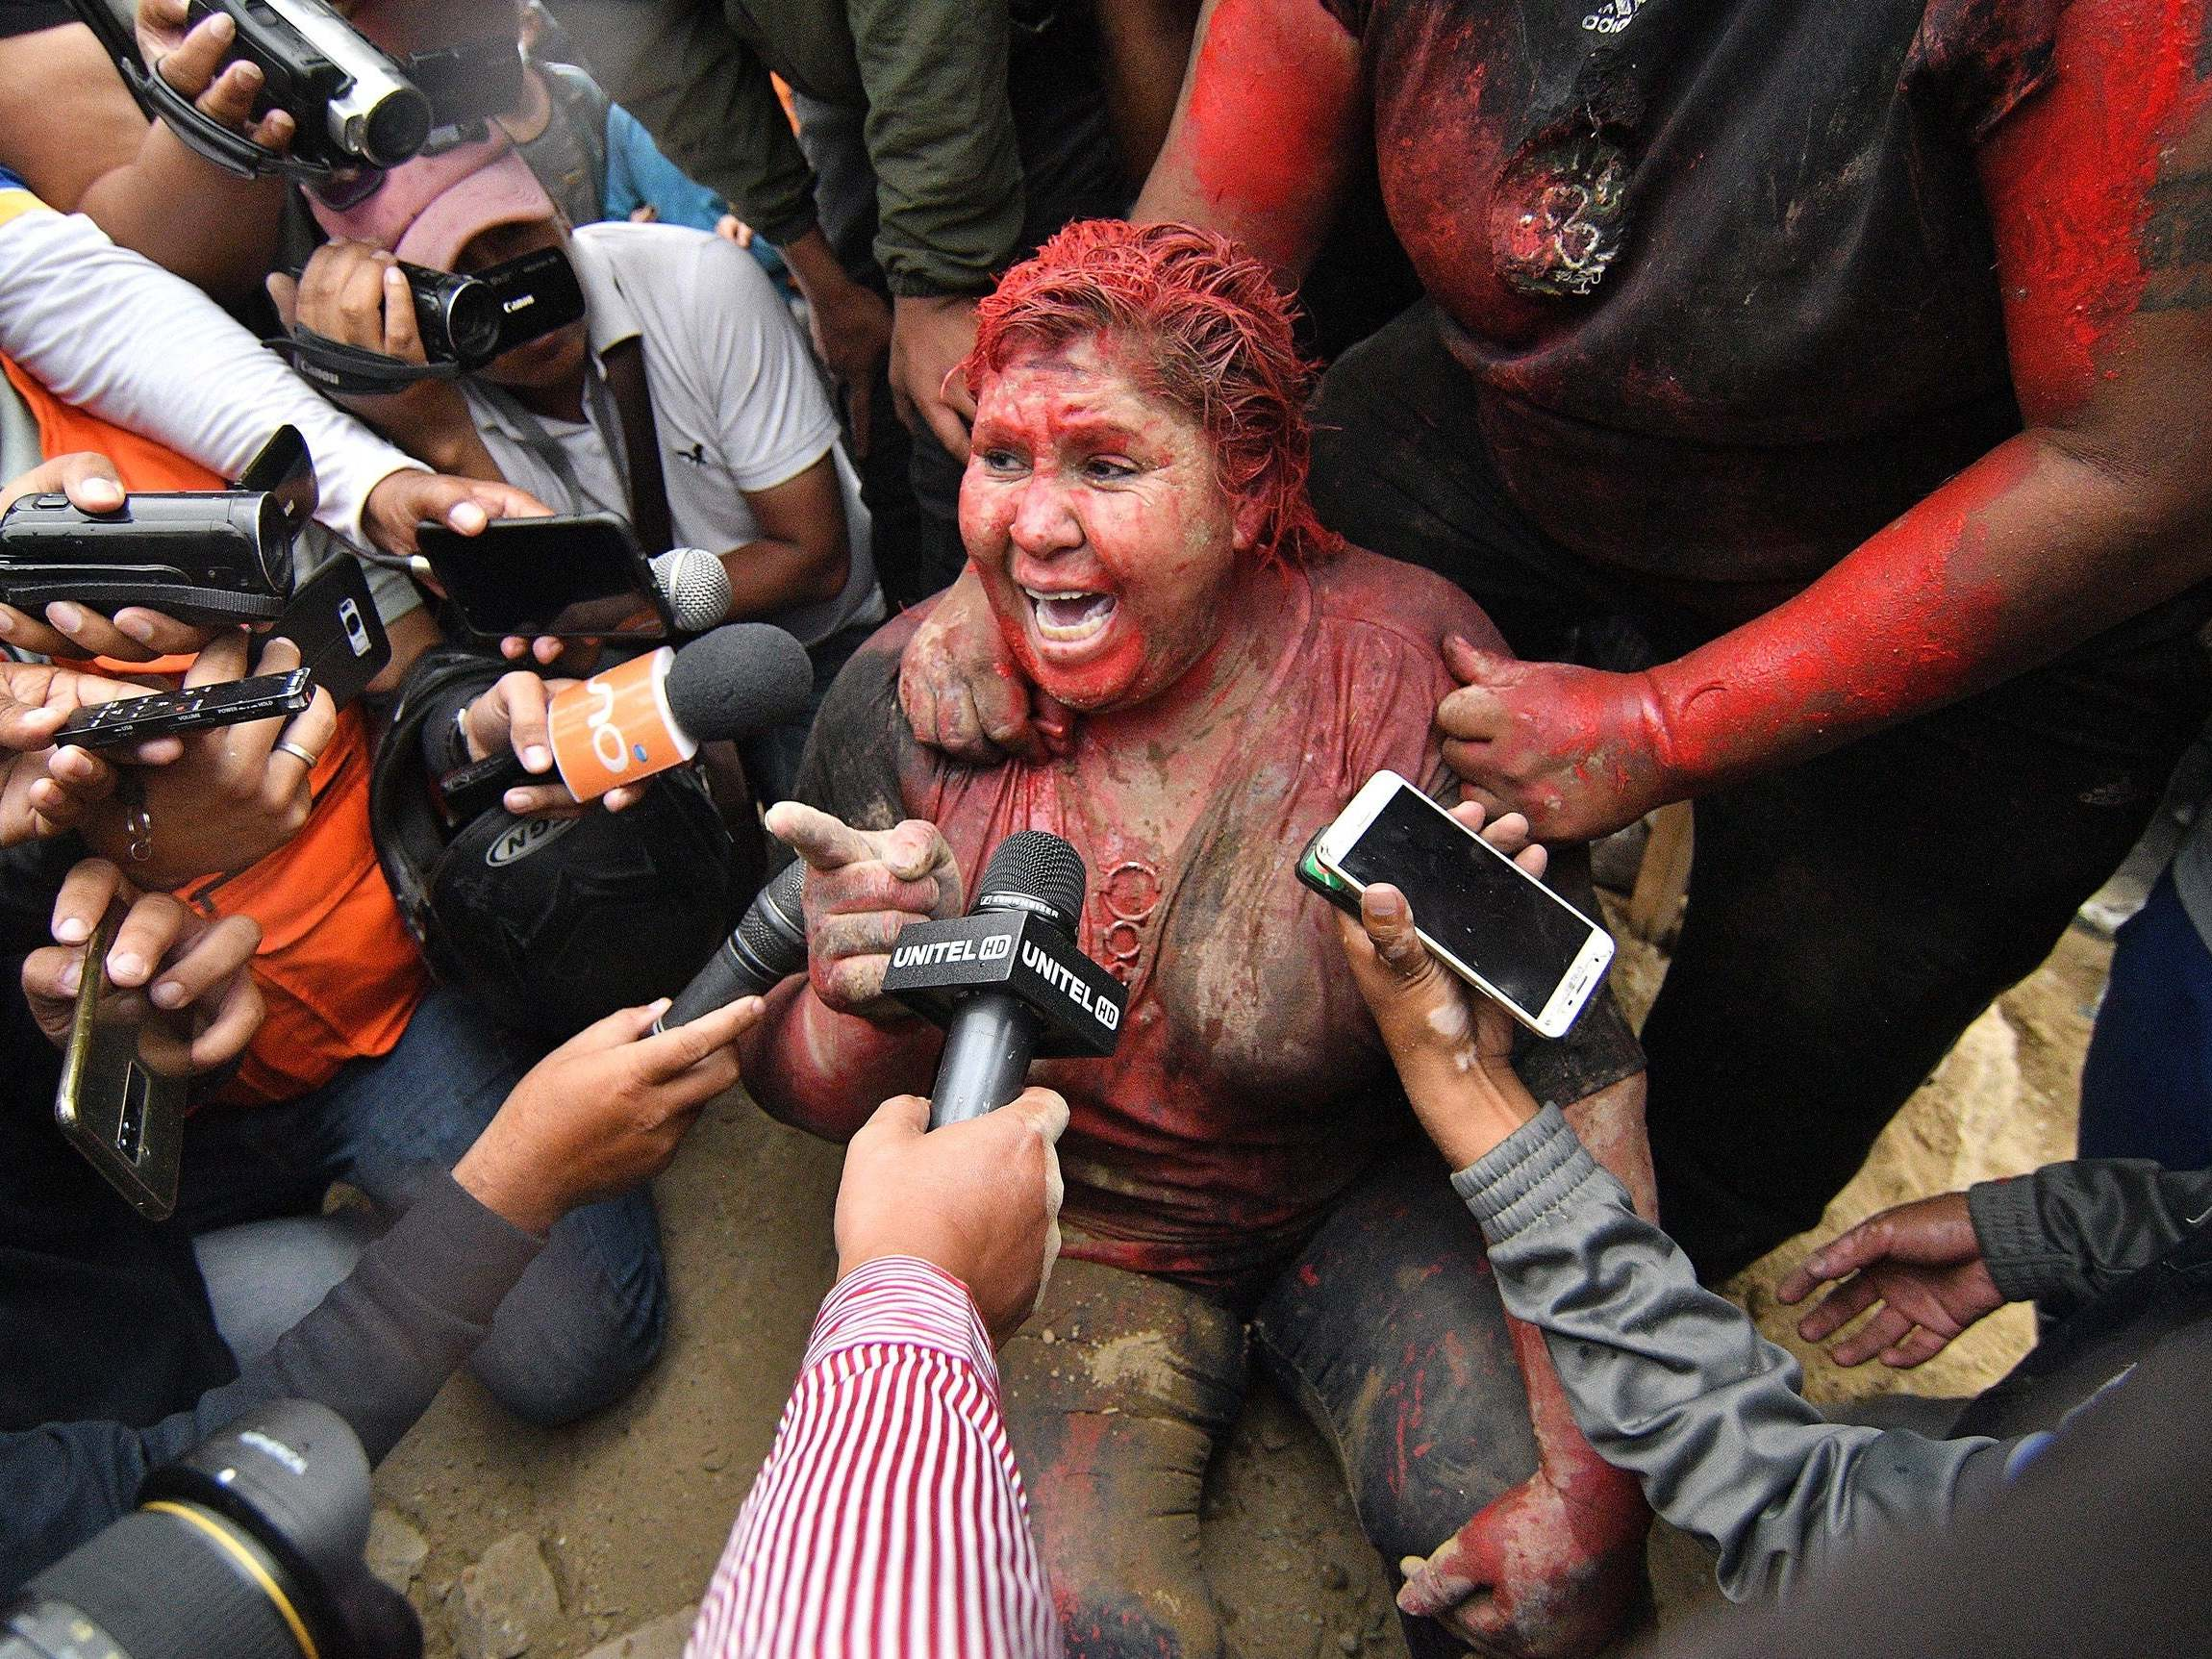 Image result for Bolivia: Protesters cut off mayor's hair, cover her in red paint and drag her through the streets